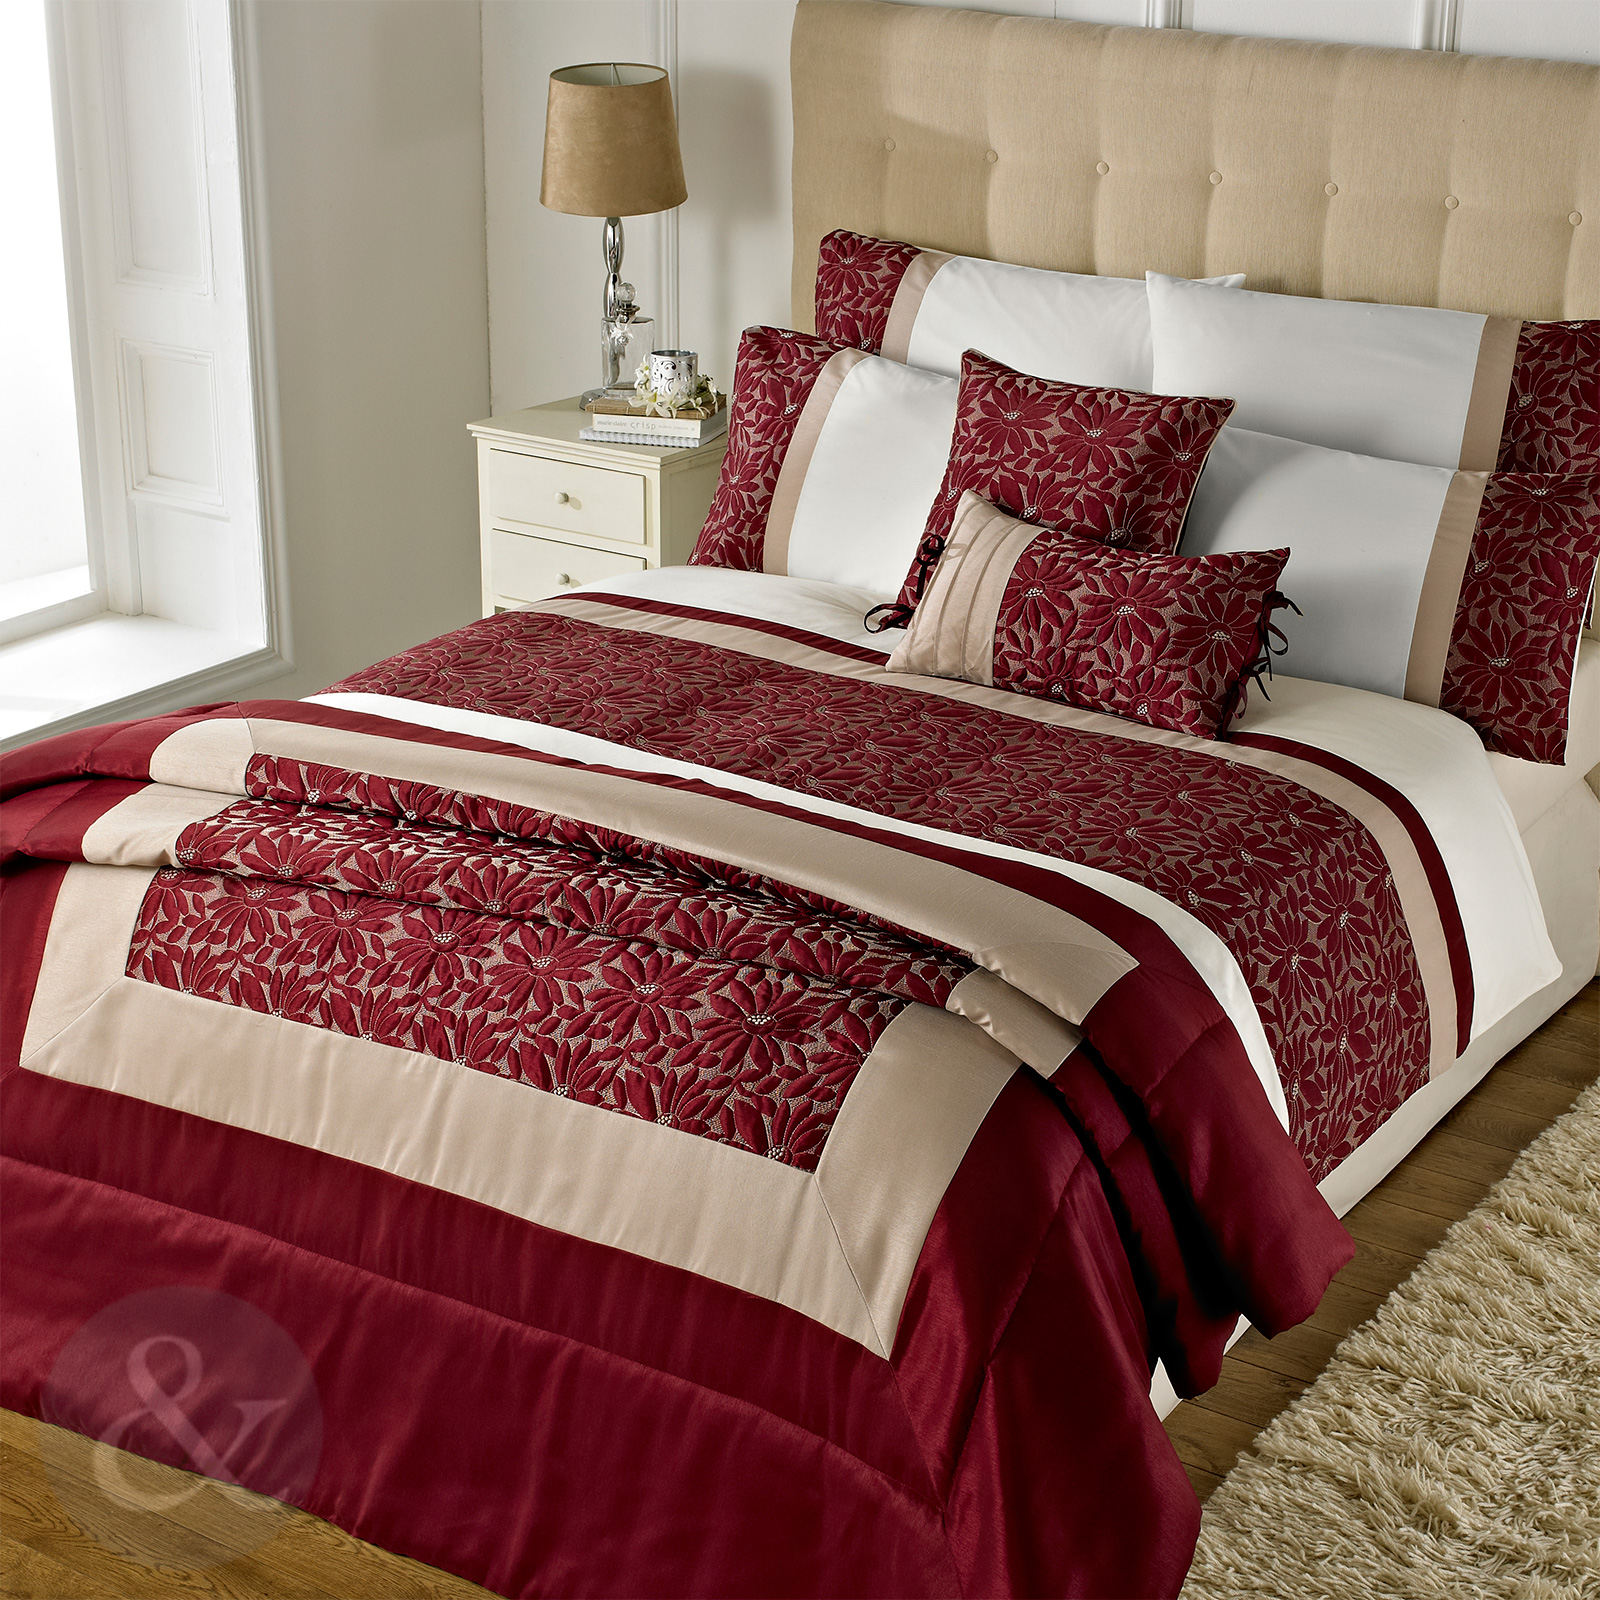 Gold Embroidered Floral Duvet Cover